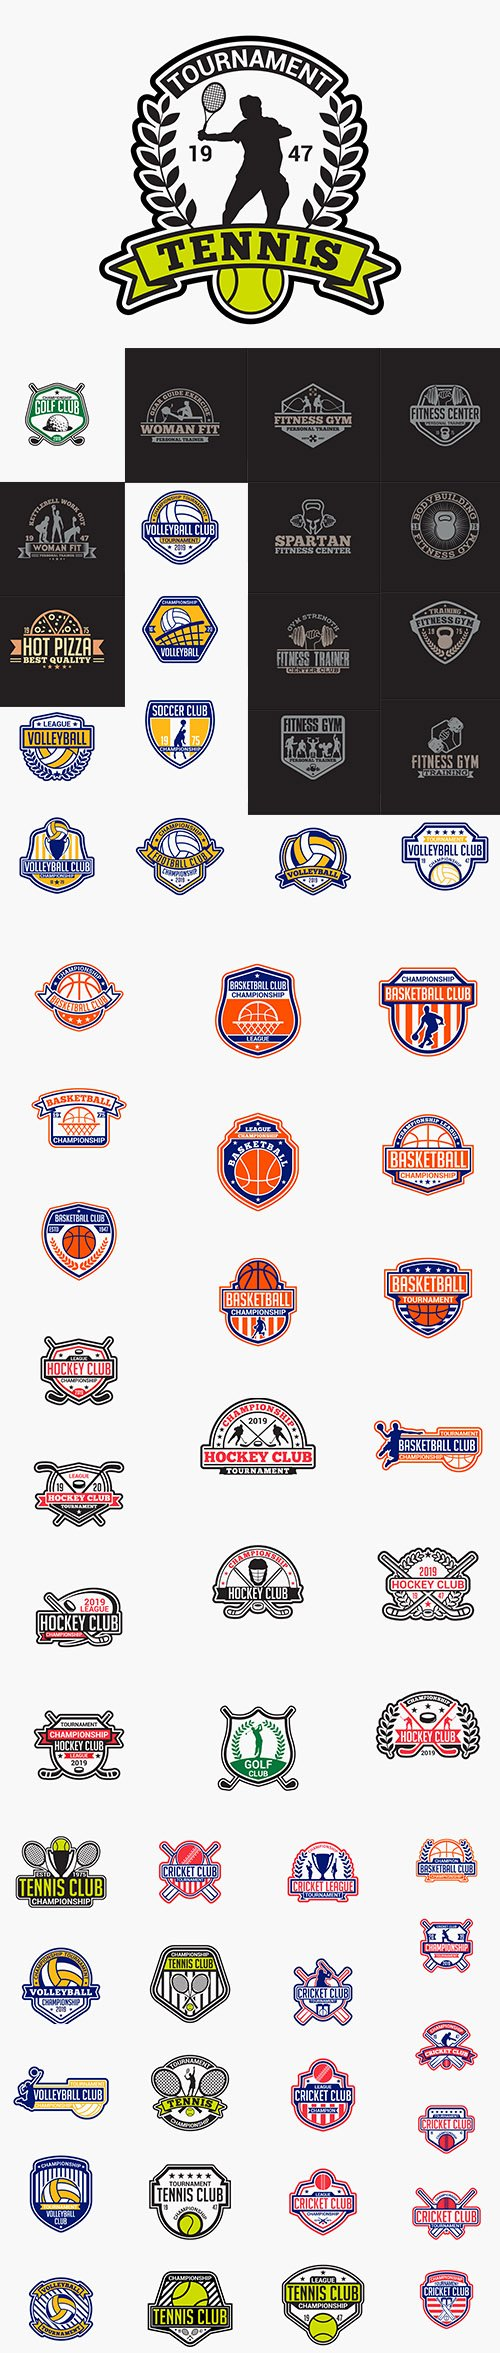 Volleyball, Tenis, Fitness, Golf, Hockey, Cricket and Basketball Badge Collections